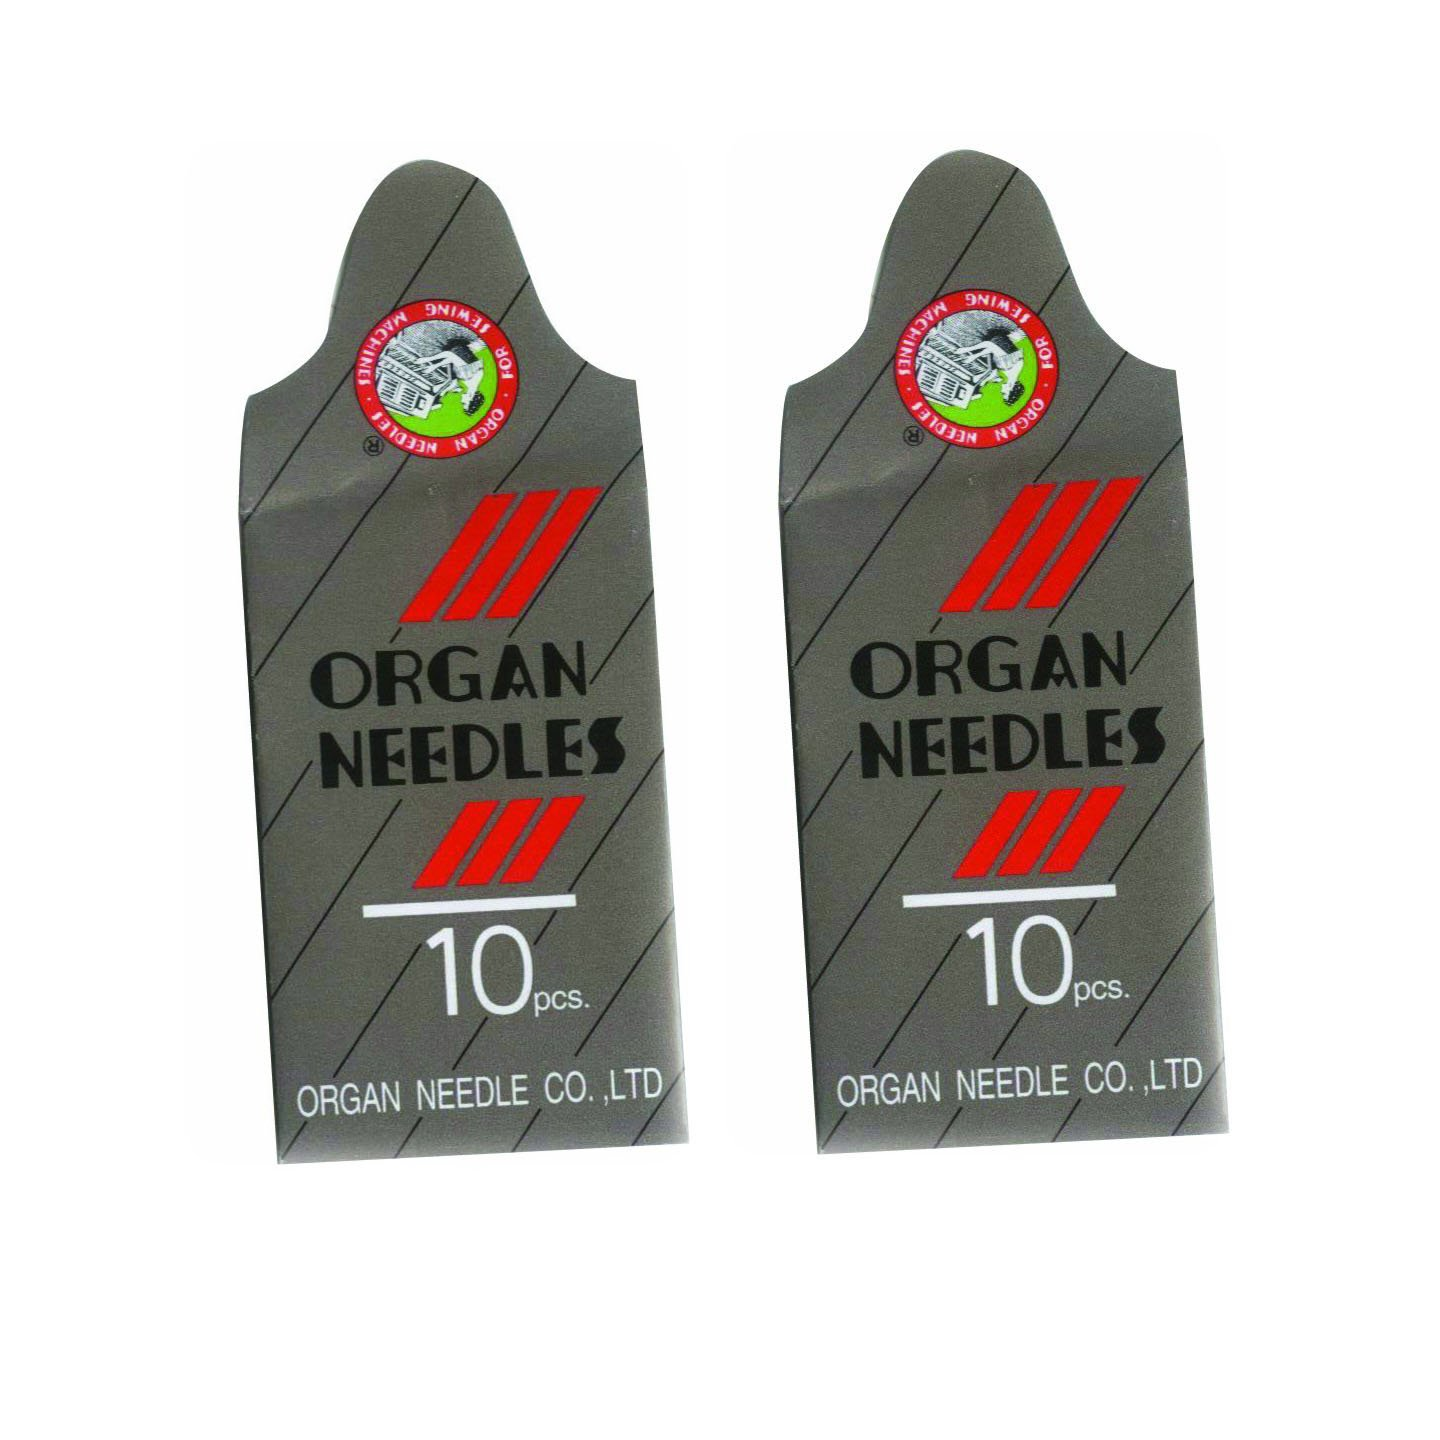 14//90 Euro Notions Embroidery Machine Needles - 2 per package - 3 per package and Size 11//75